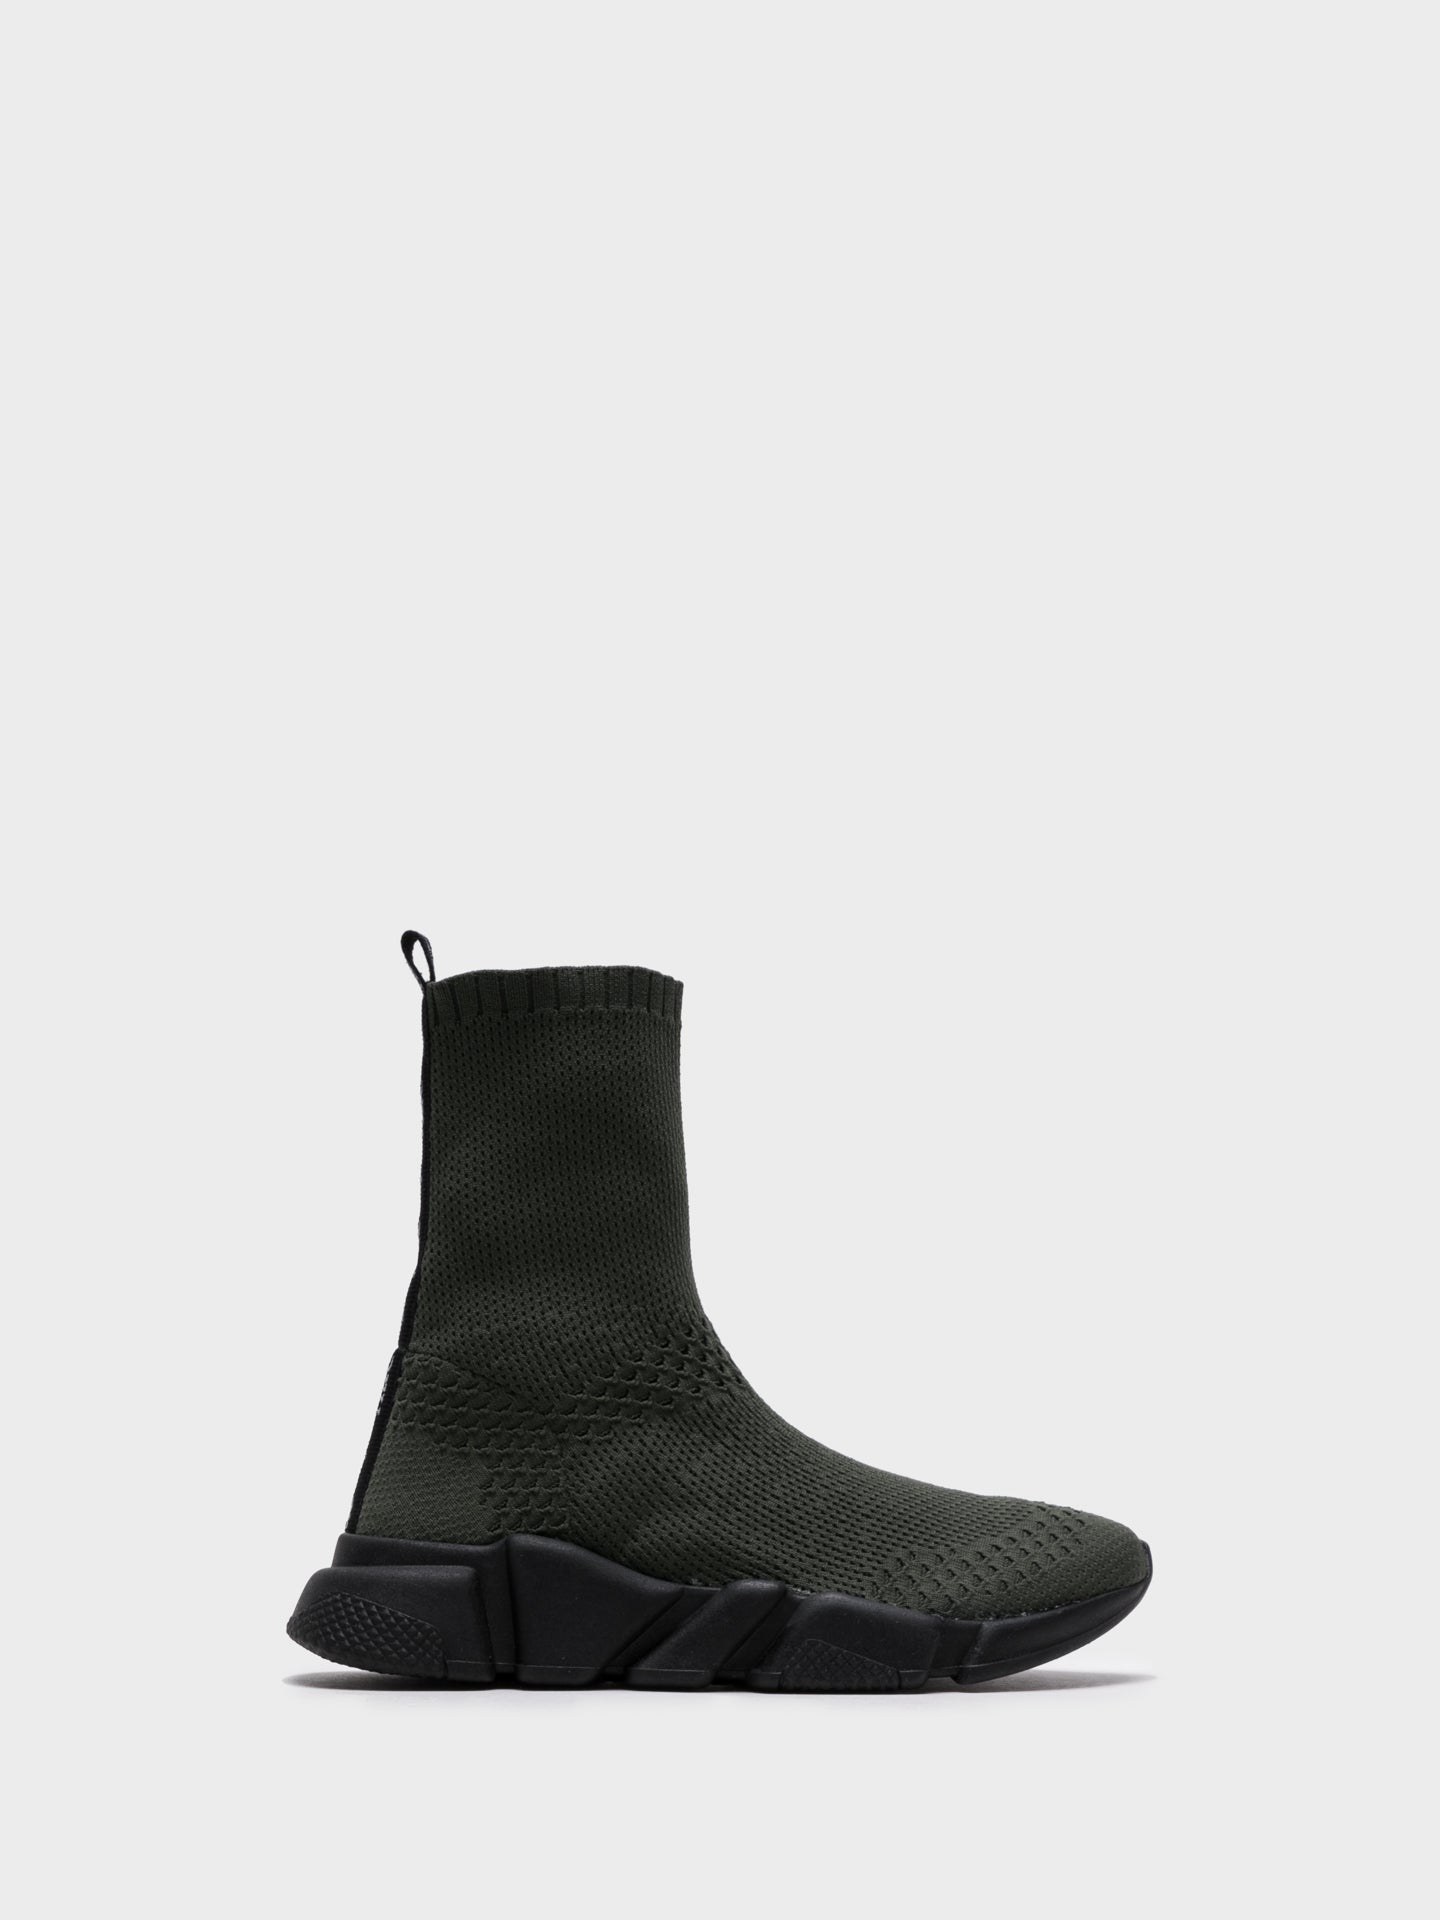 NAE Vegan Shoes DarkGreen Hi-Top Trainers